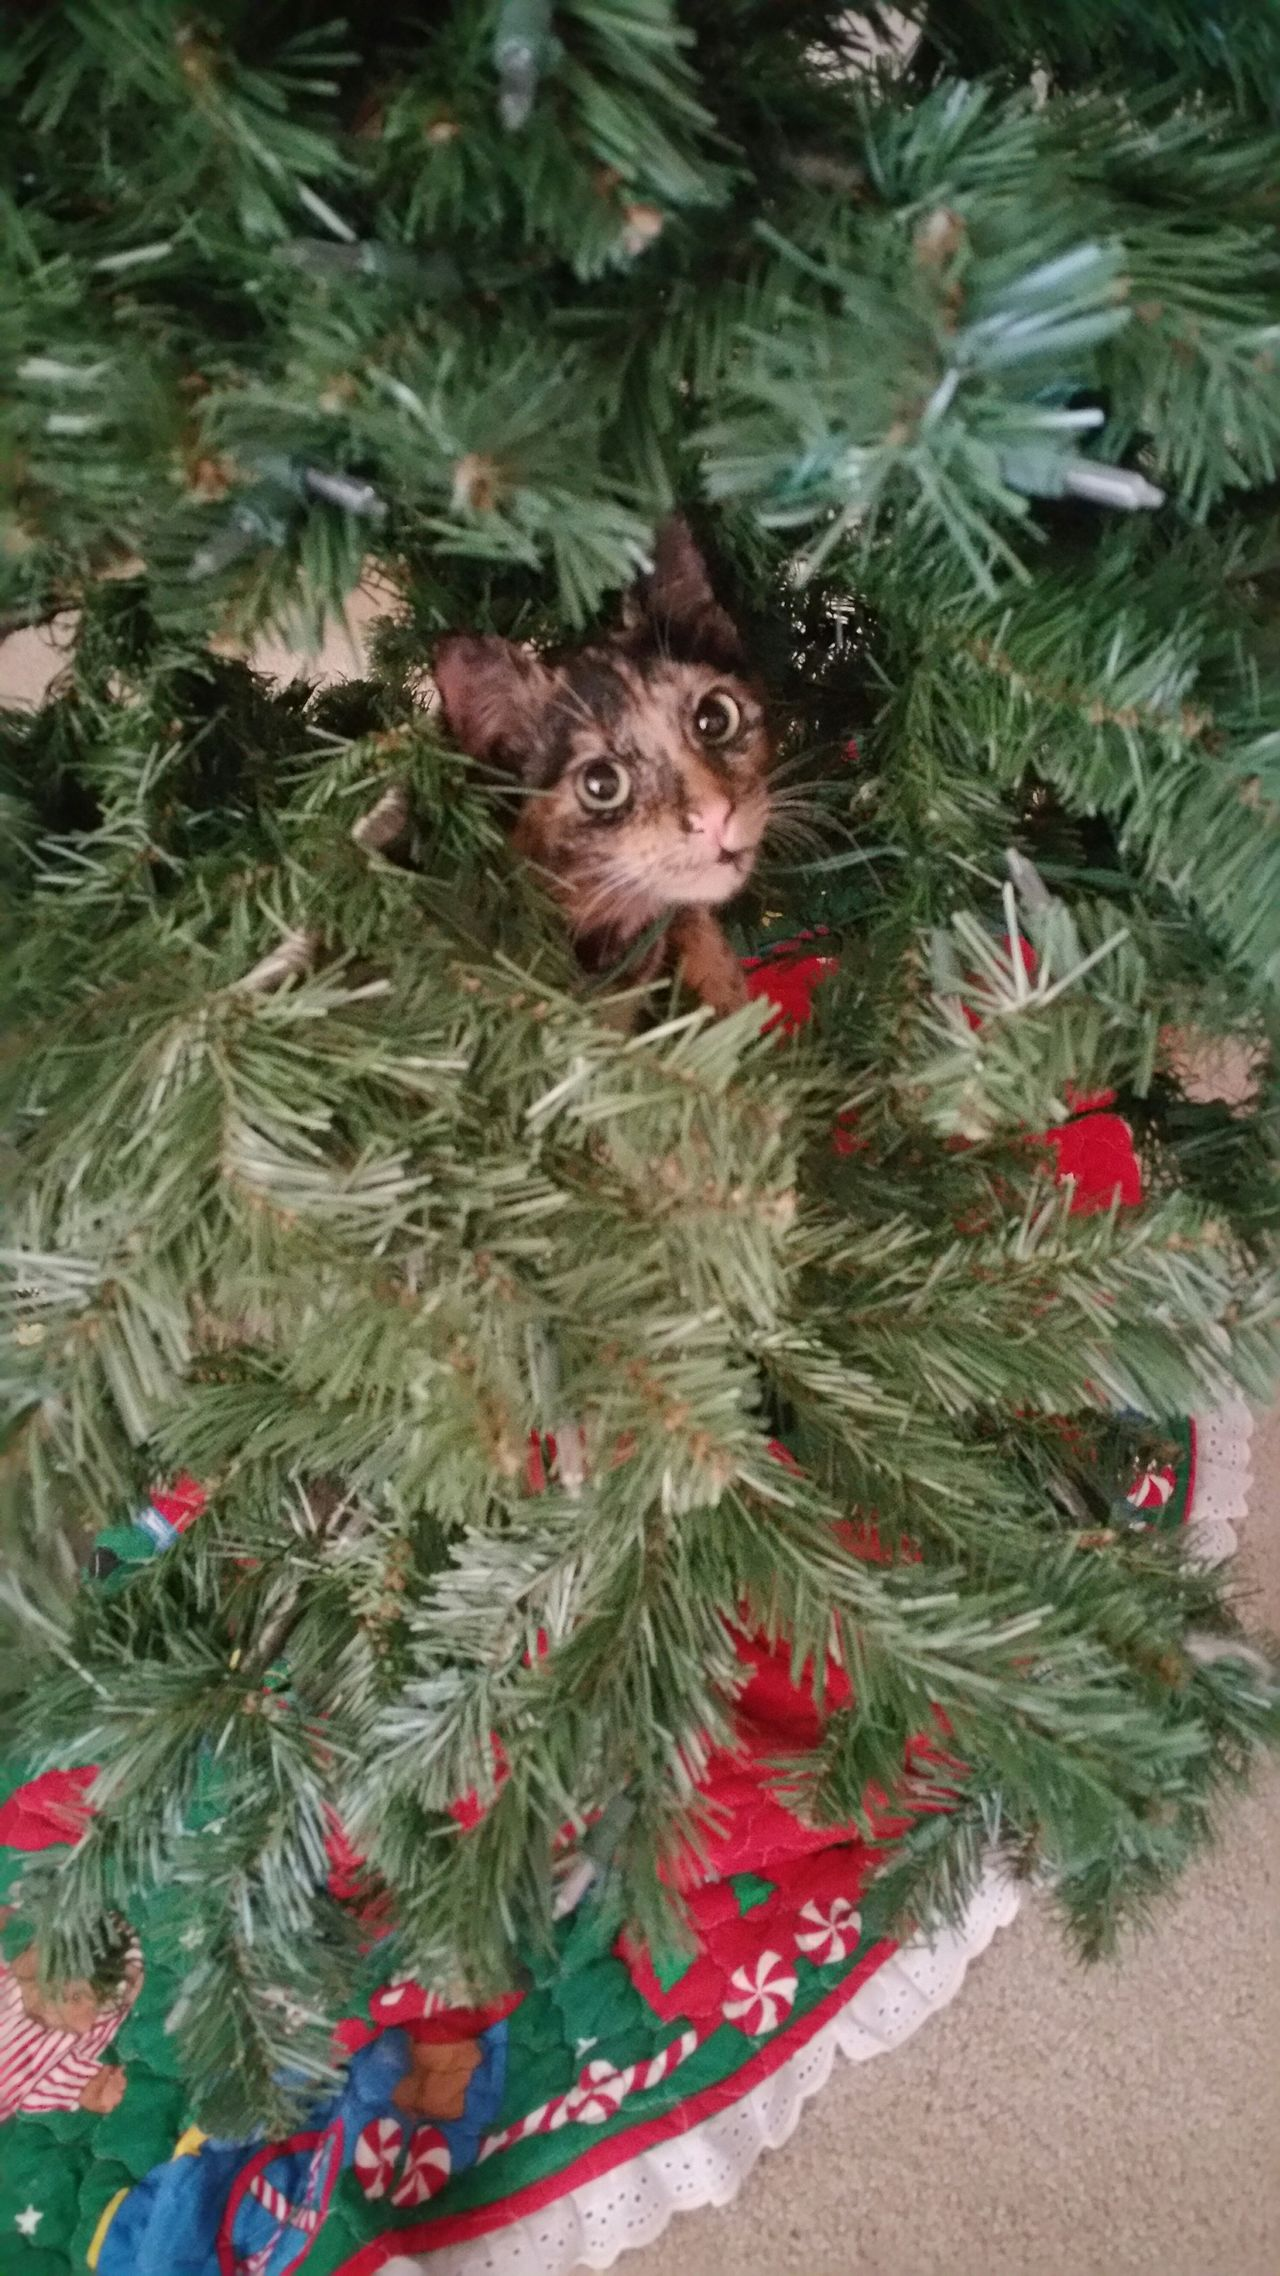 Showcase: December Christmas Tree Kitten Hanging Out No Ornaments Climbing Abbicat First Eyeem Photo